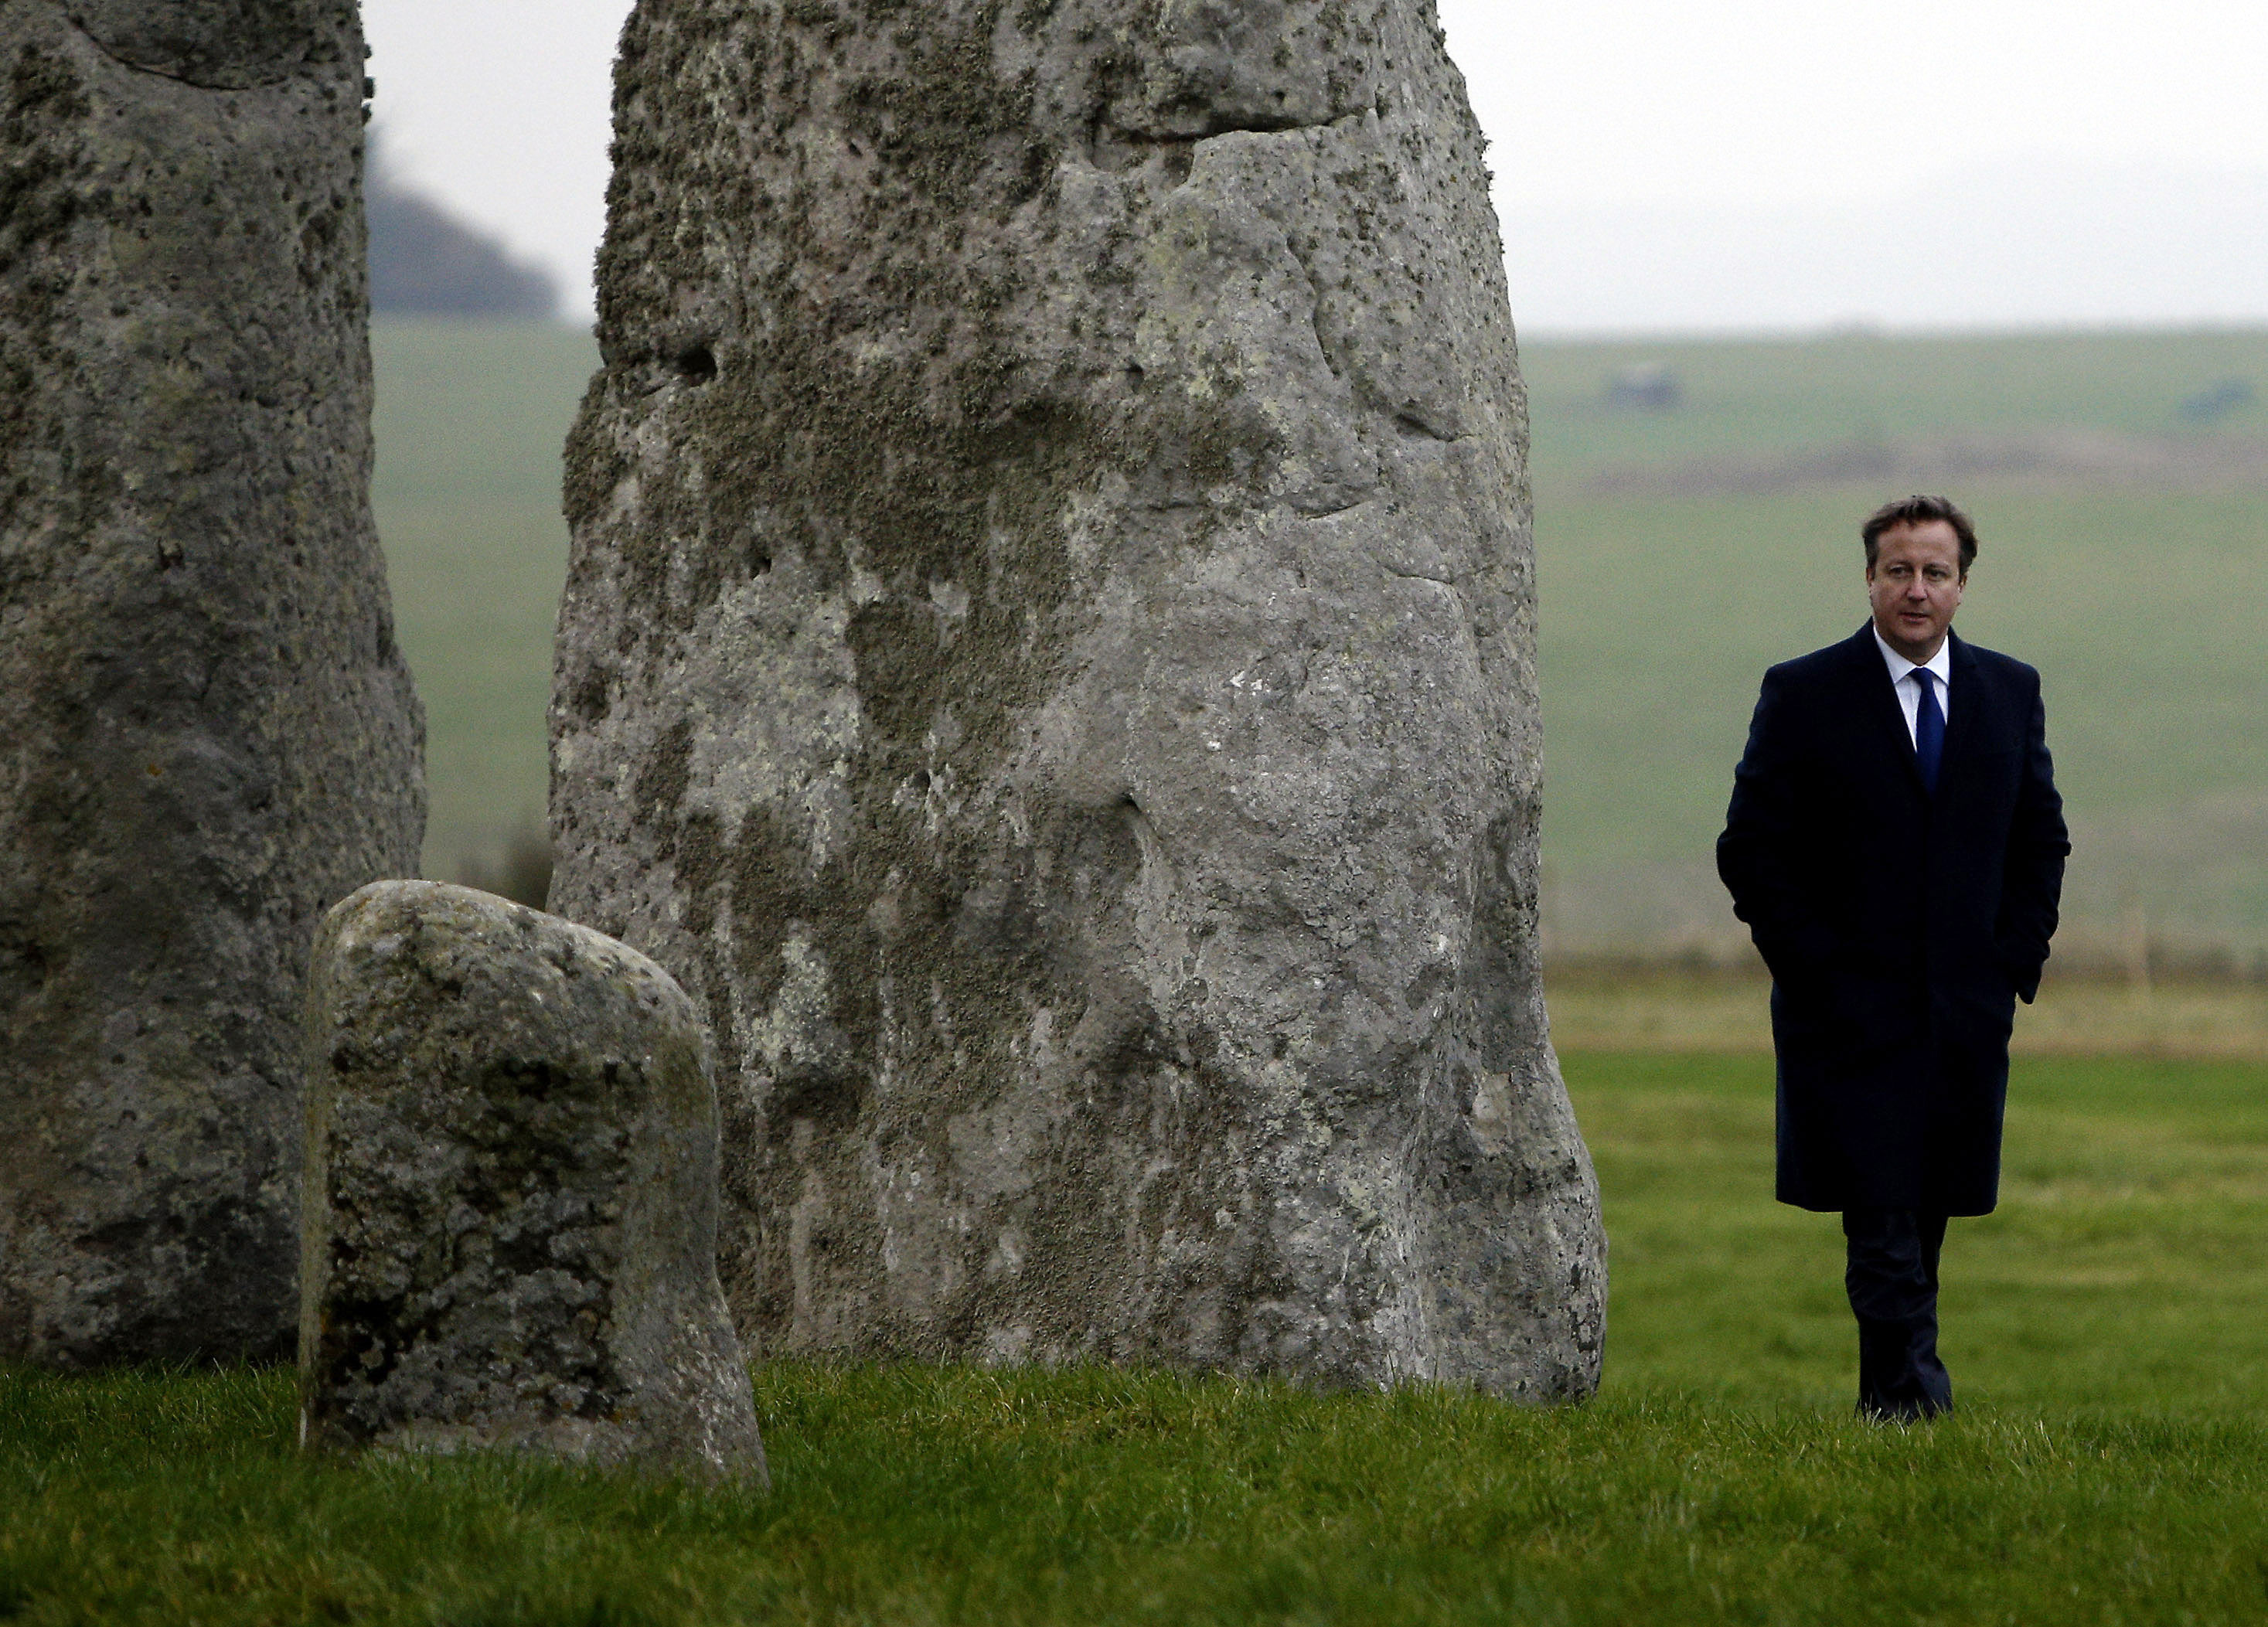 Then prime minister David Cameron visiting Stonehenge in 2014